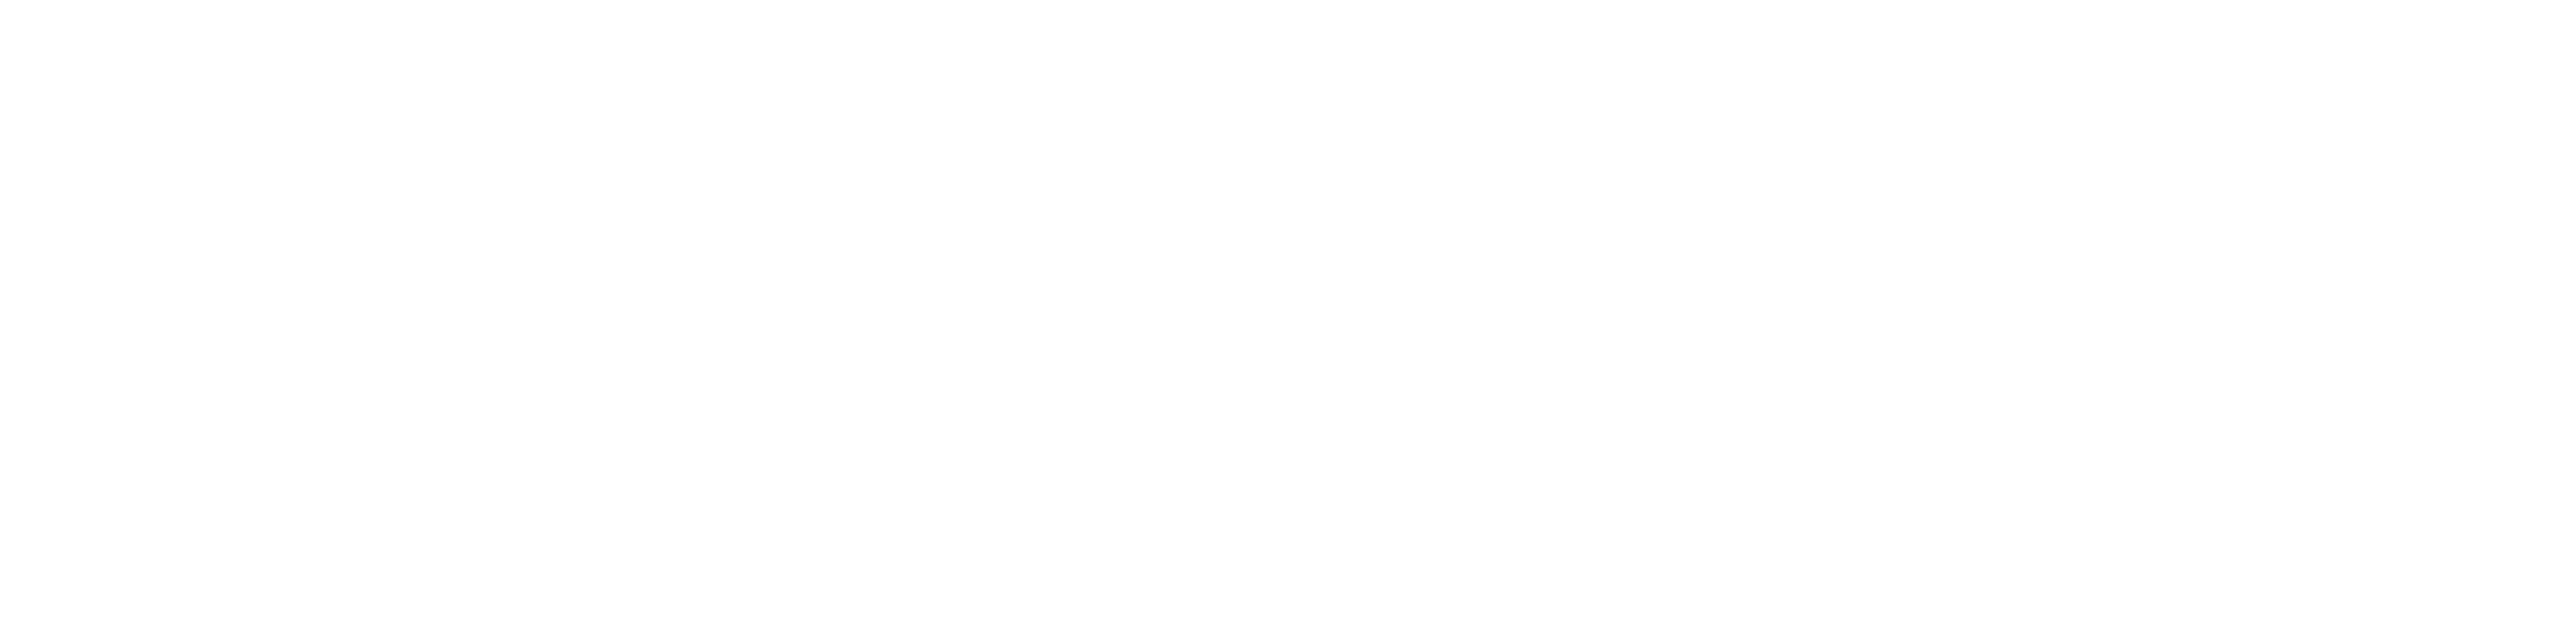 Dead Motion Records